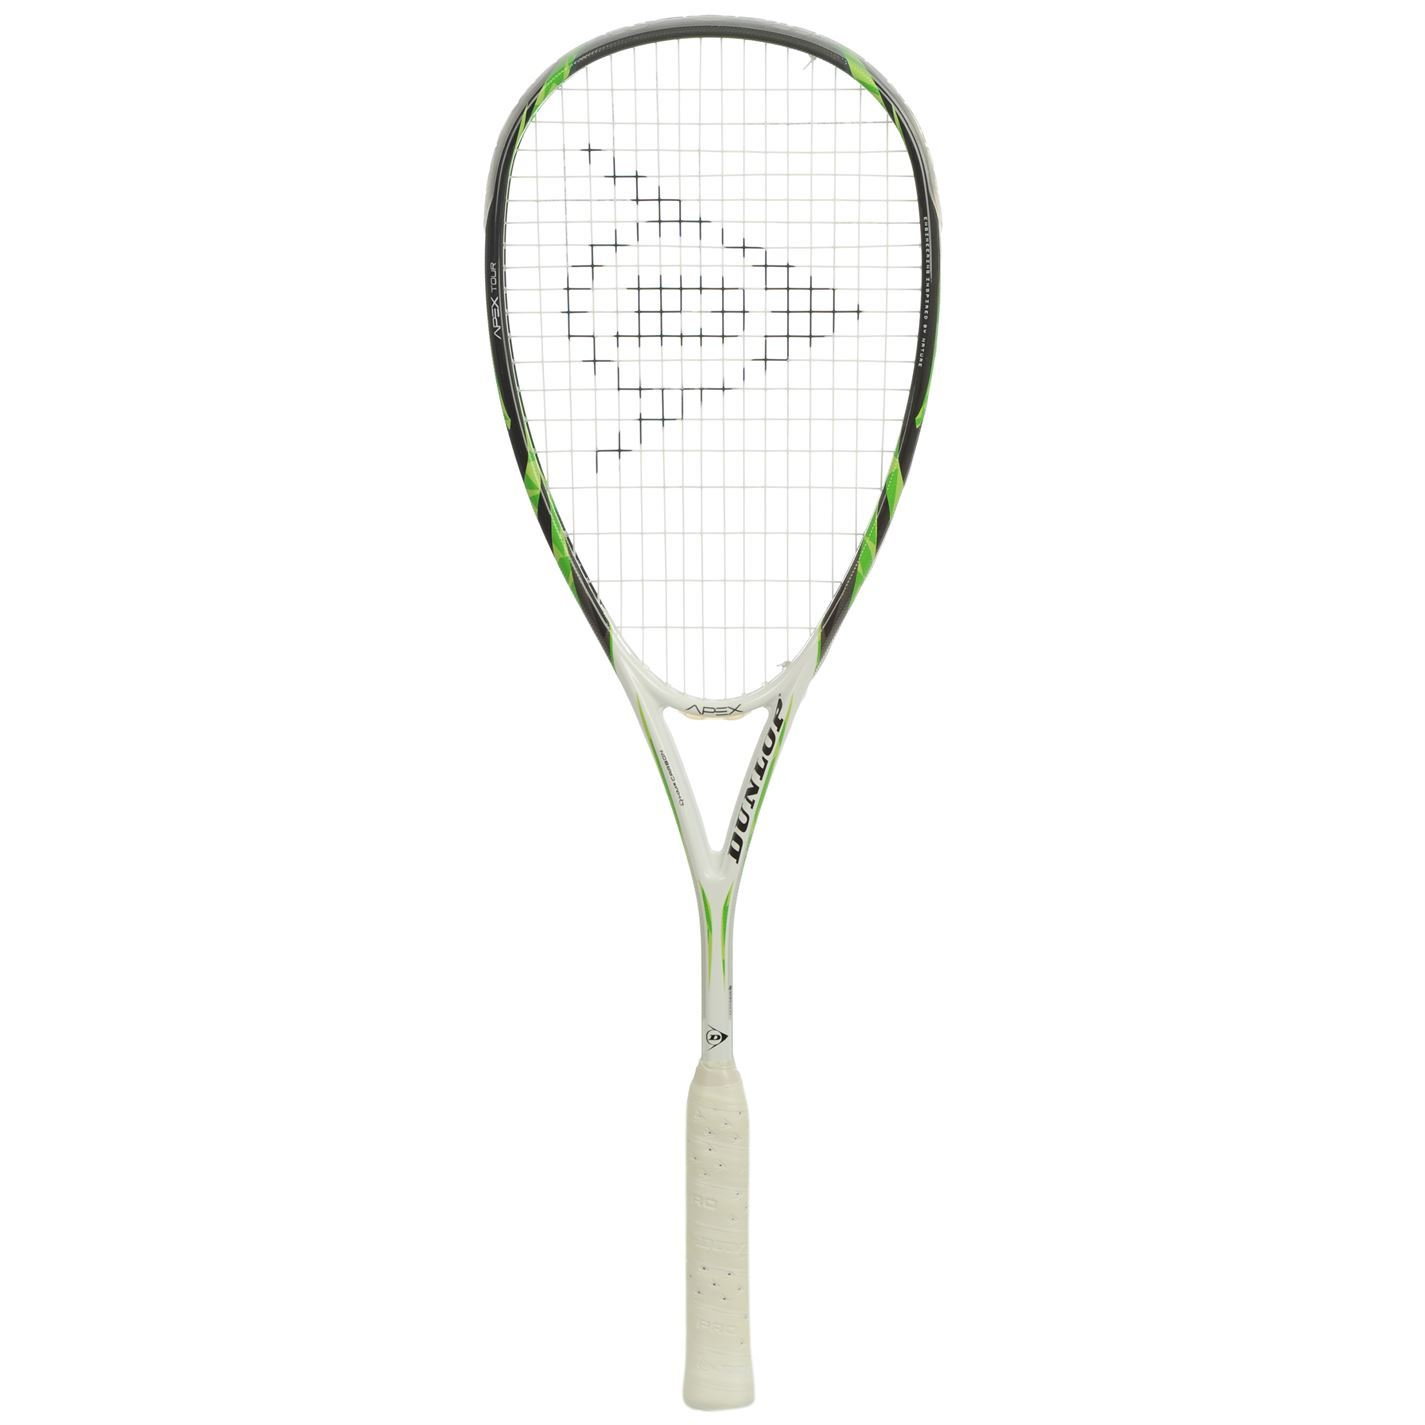 Dunlop Apex Tour Squash Racket